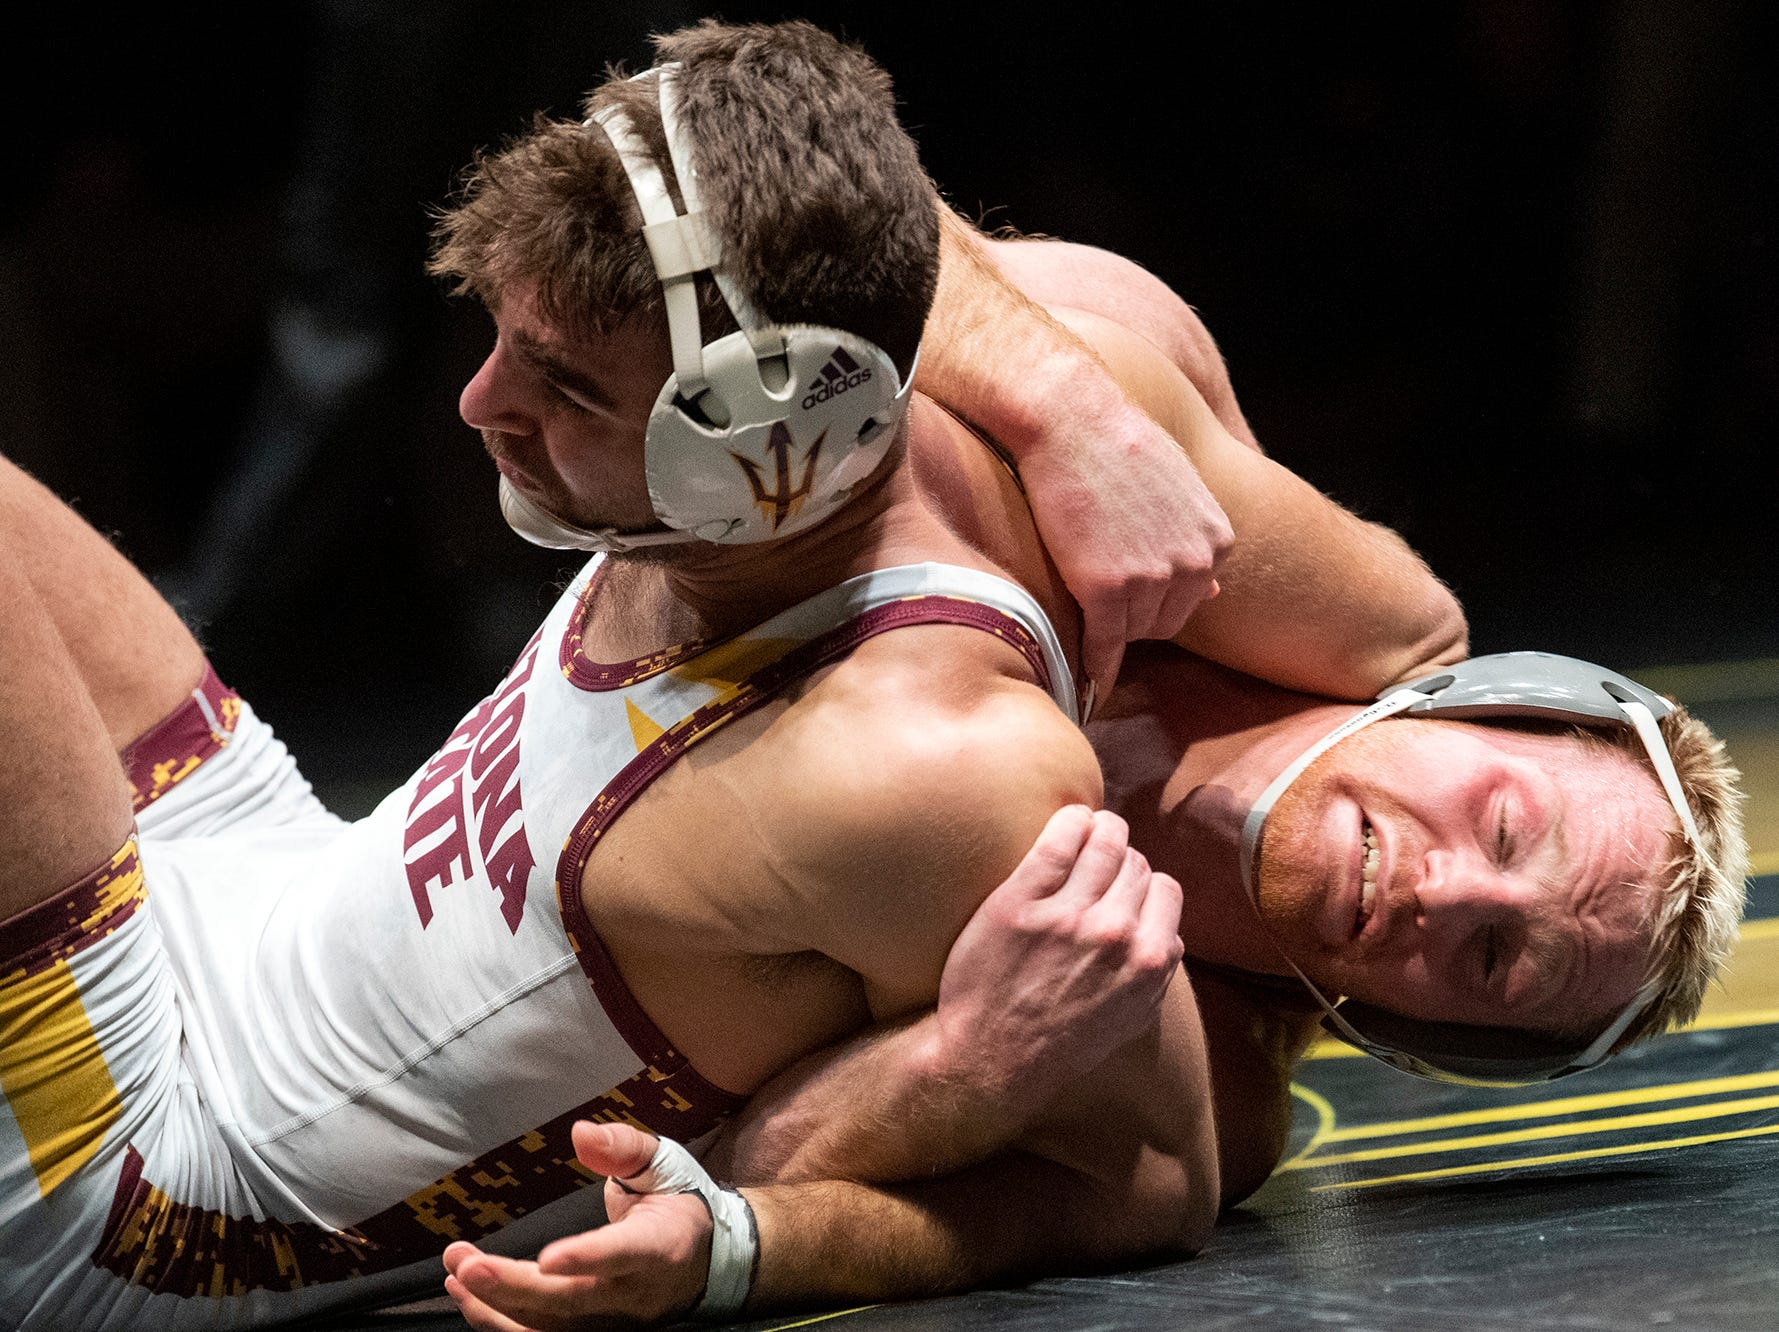 Lock Haven's Chance Marsteller, right, tries to takedown Arizona State's Josh Shields during the 165-pound bout at Red Lion's Fitzkee Athletic Center on Friday, Jan. 25, 2019. Shields (No. 5) beat Marsteller (No. 4), 2-1, in a tiebreaker. No. 22 Lock Haven upset No. 12 Arizona State, 23-14, in the first ever 'Rumble in the Jungle.'